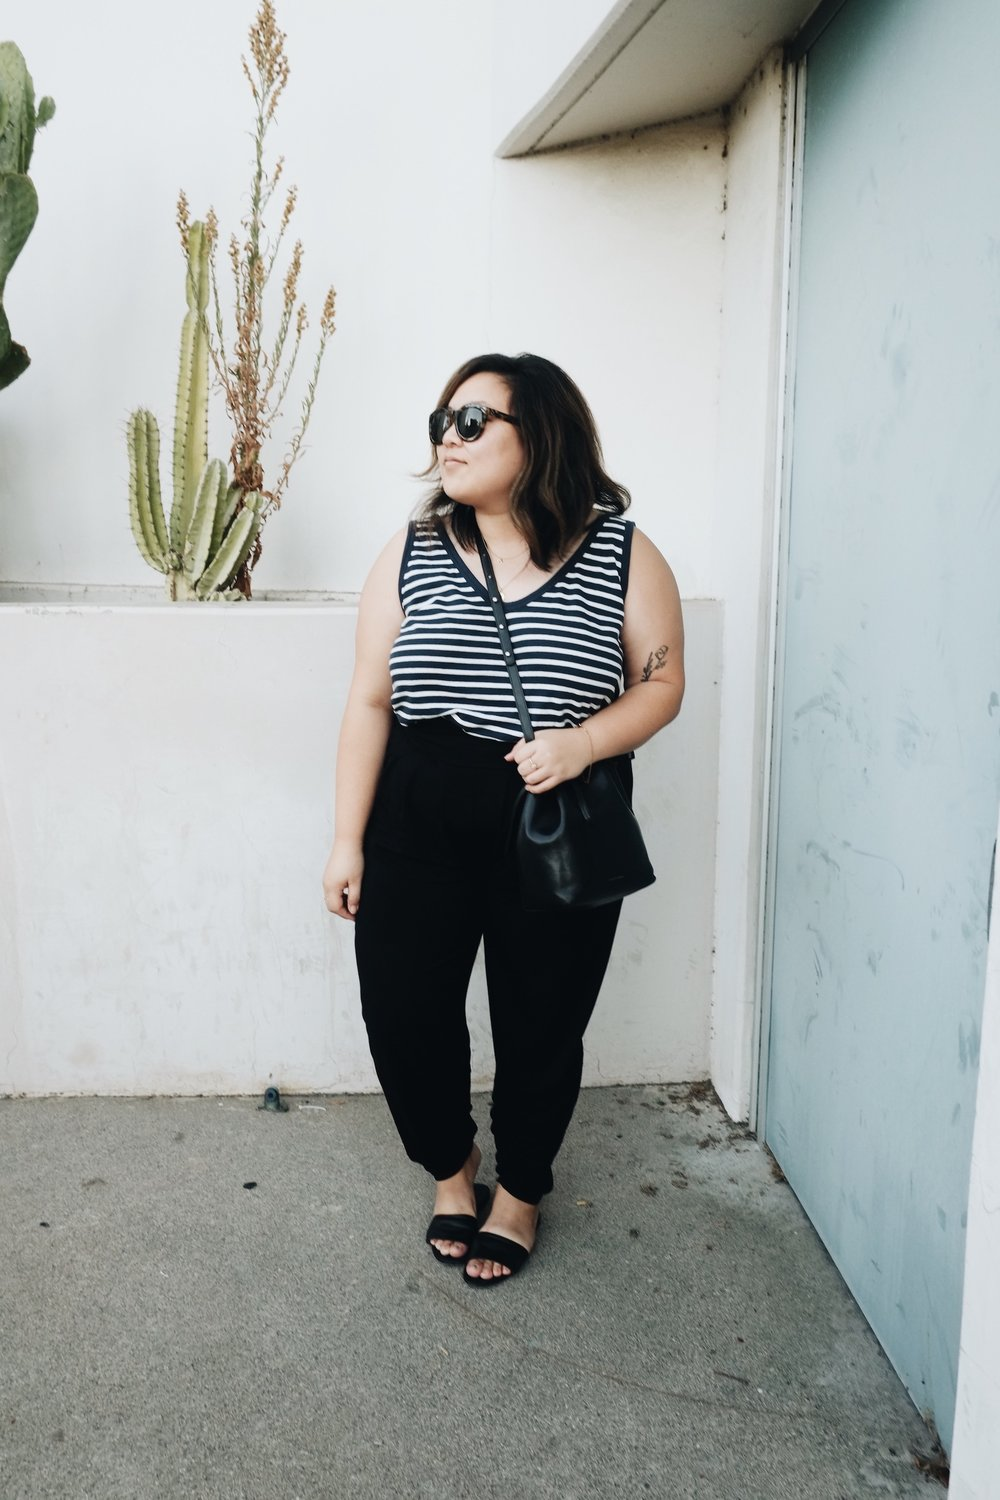 Minimalist outfit idea - striped tee with black pants // A Week Of Minimalist Uniform Outfits With Jasmine Hwang From The Pleb Life on The Good Trade